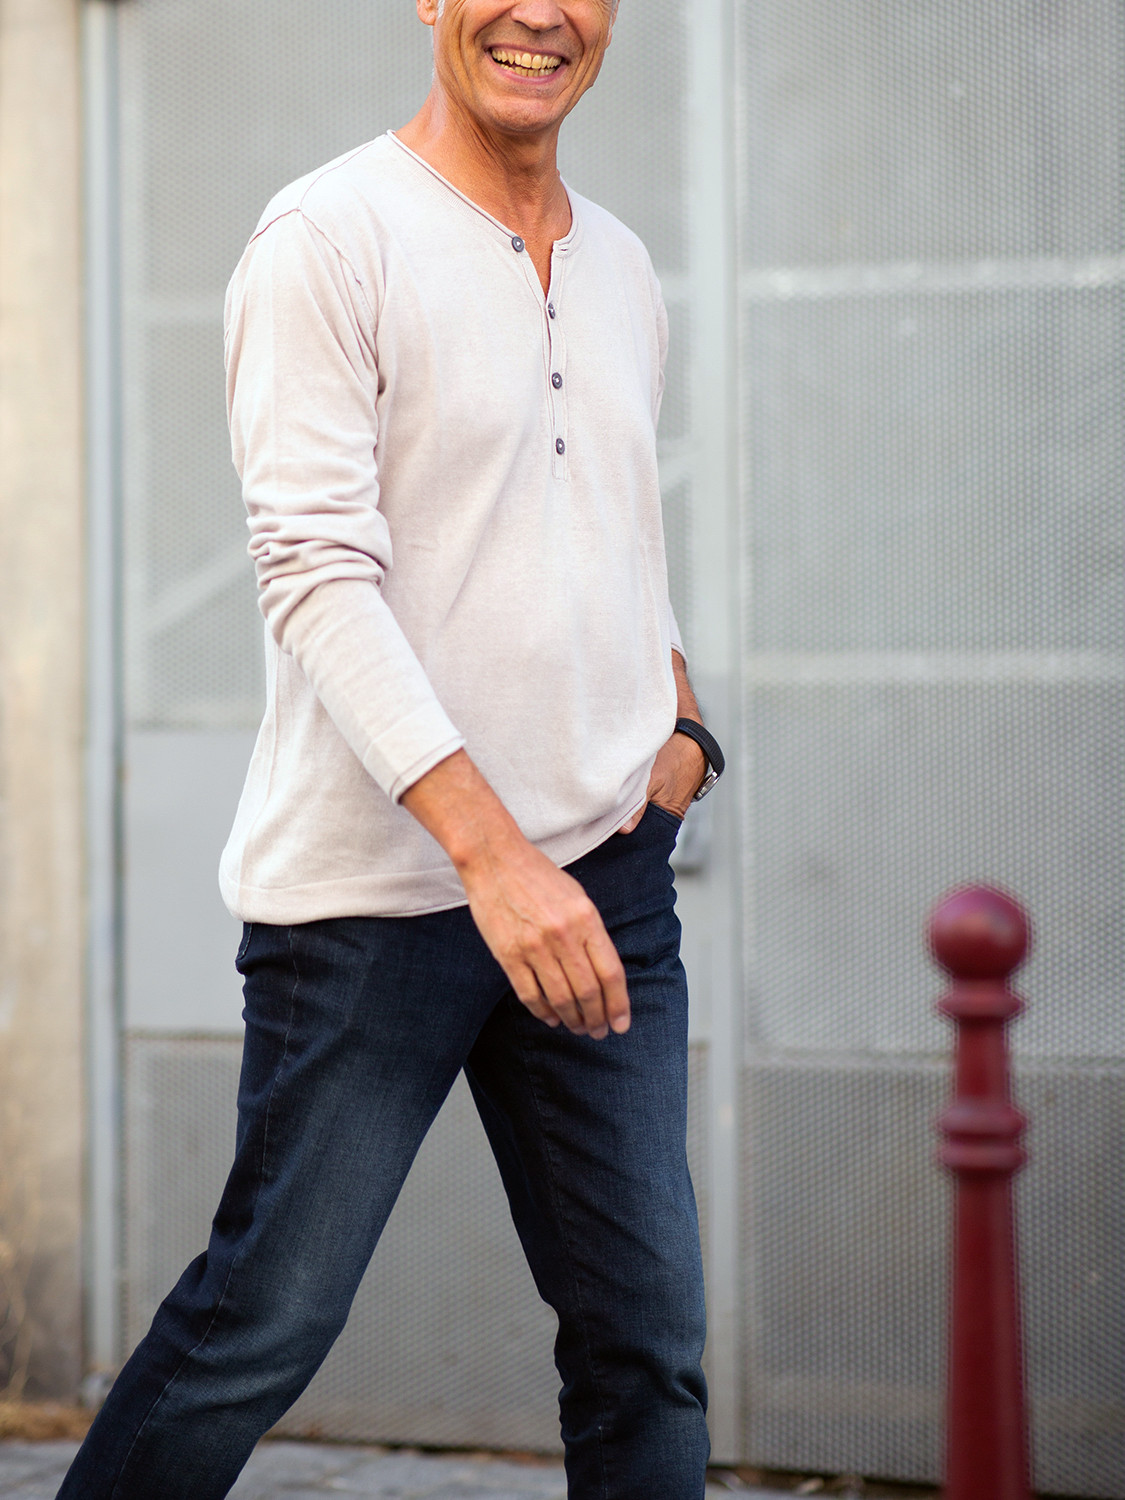 Men's outfit idea for 2021 with neutral long-sleeved henley top, dark blue jeans. Suitable for spring and fall.